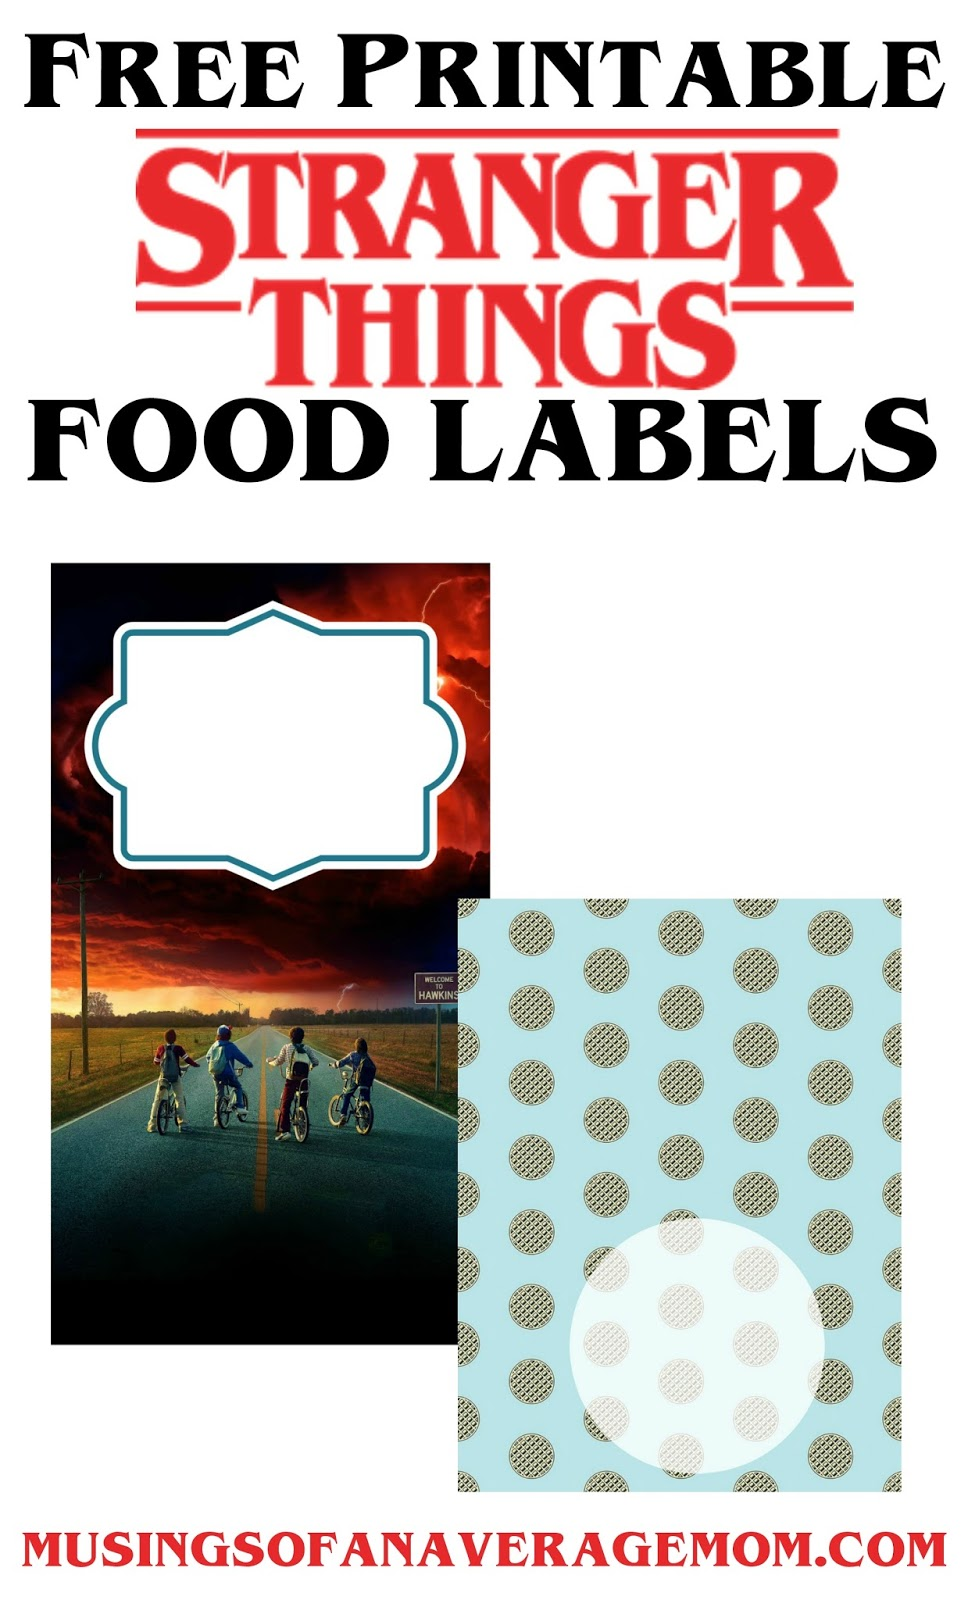 dacc56a6 Free Printable Stranger Things water bottle labels from HaleGrafx